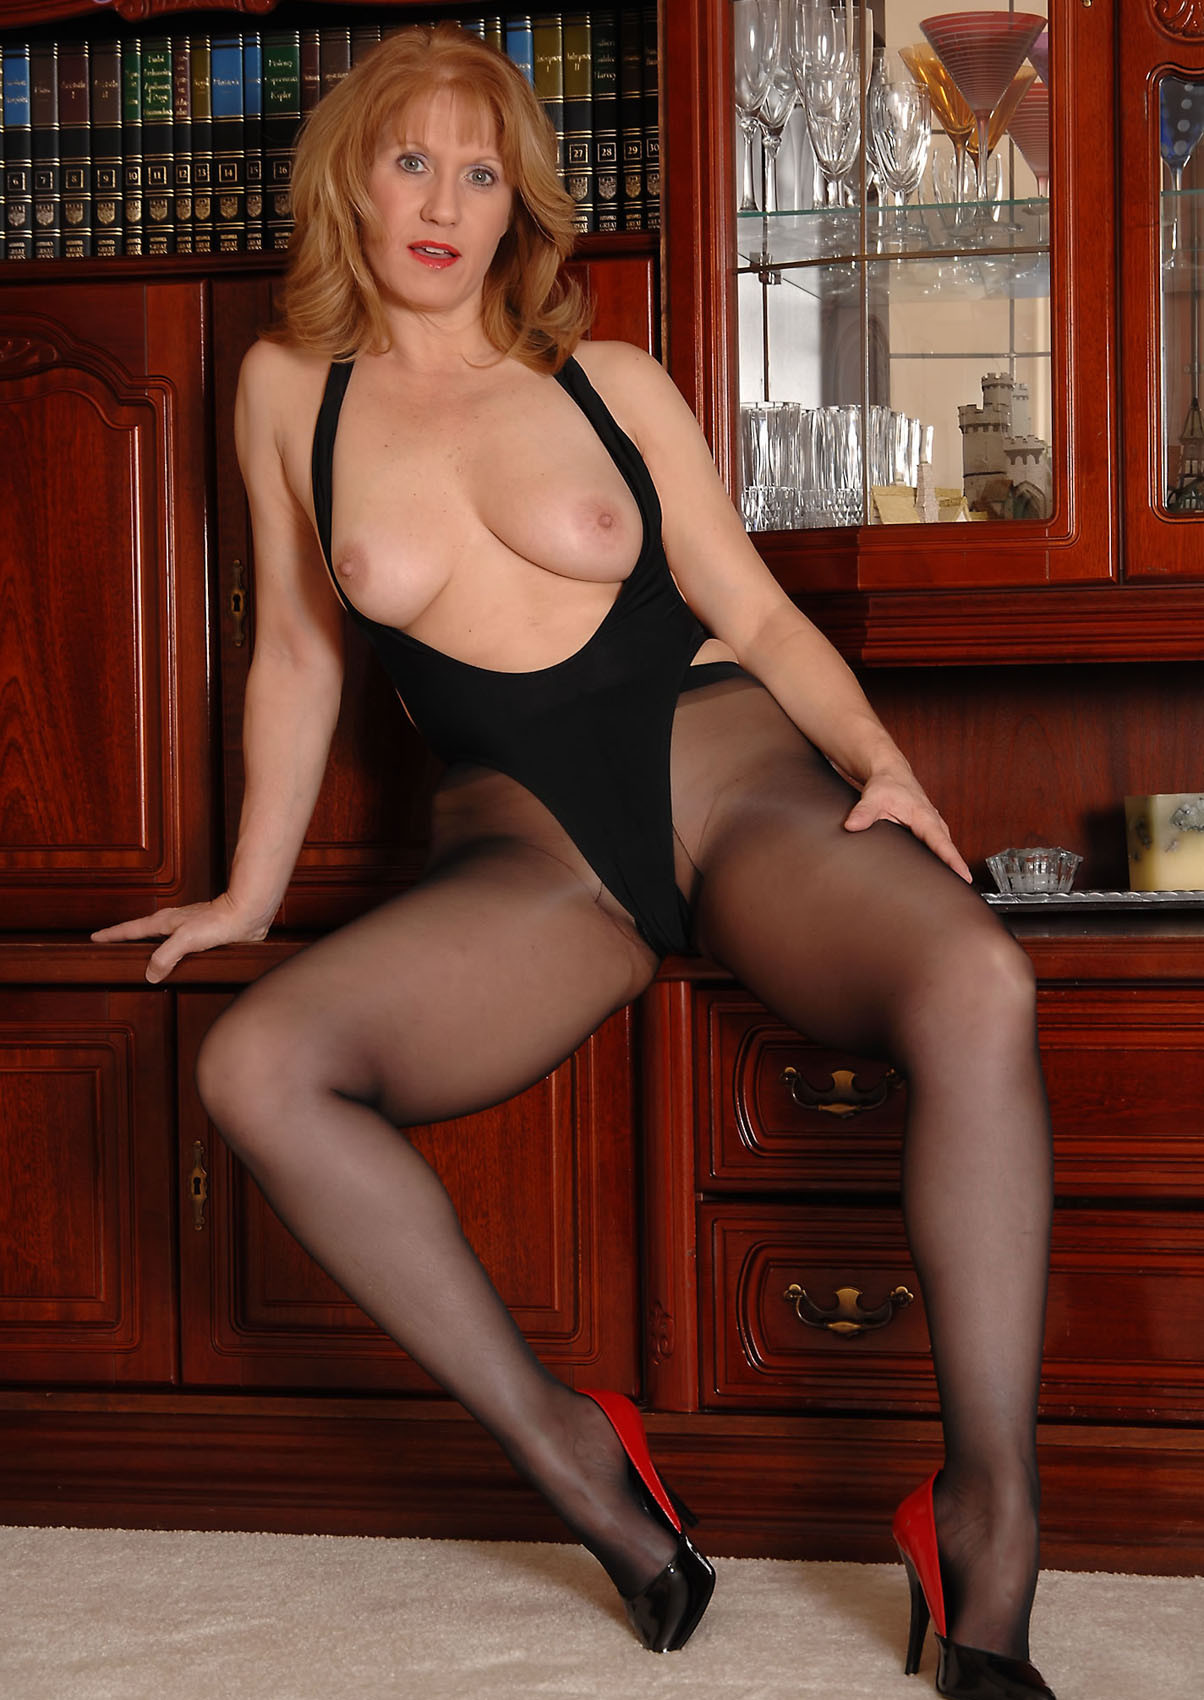 Nylon stocking models porn